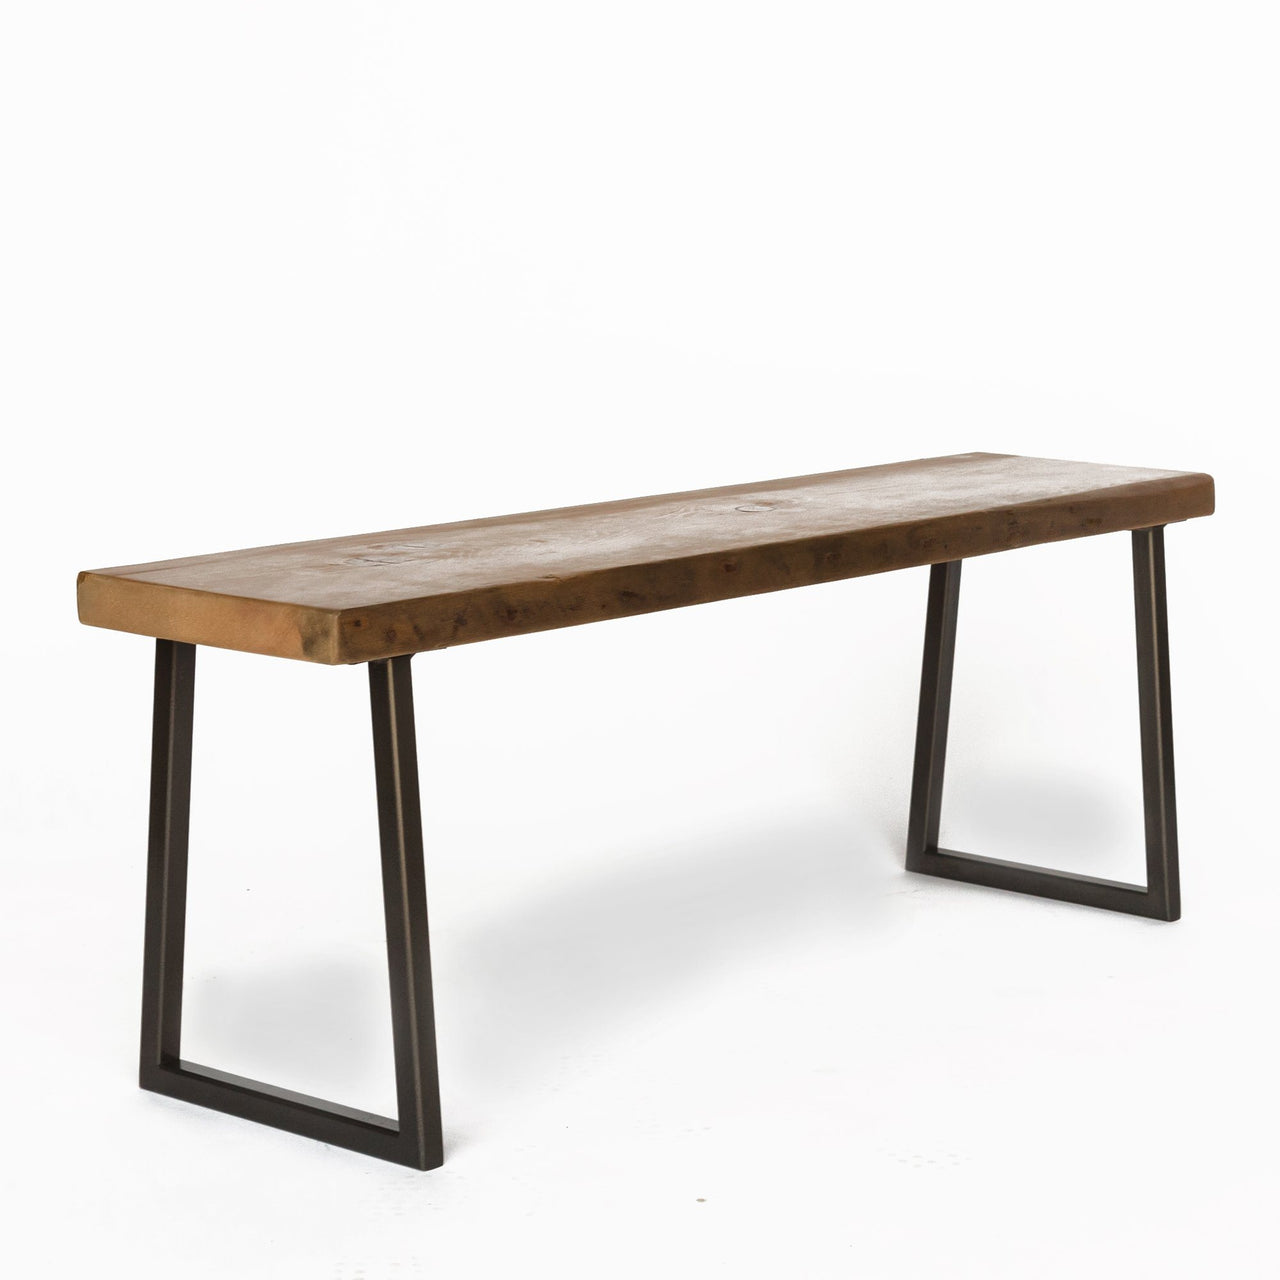 bench metal table collections wood coffee leg airplane tables square modern products wing rustic style woodwaves lodge